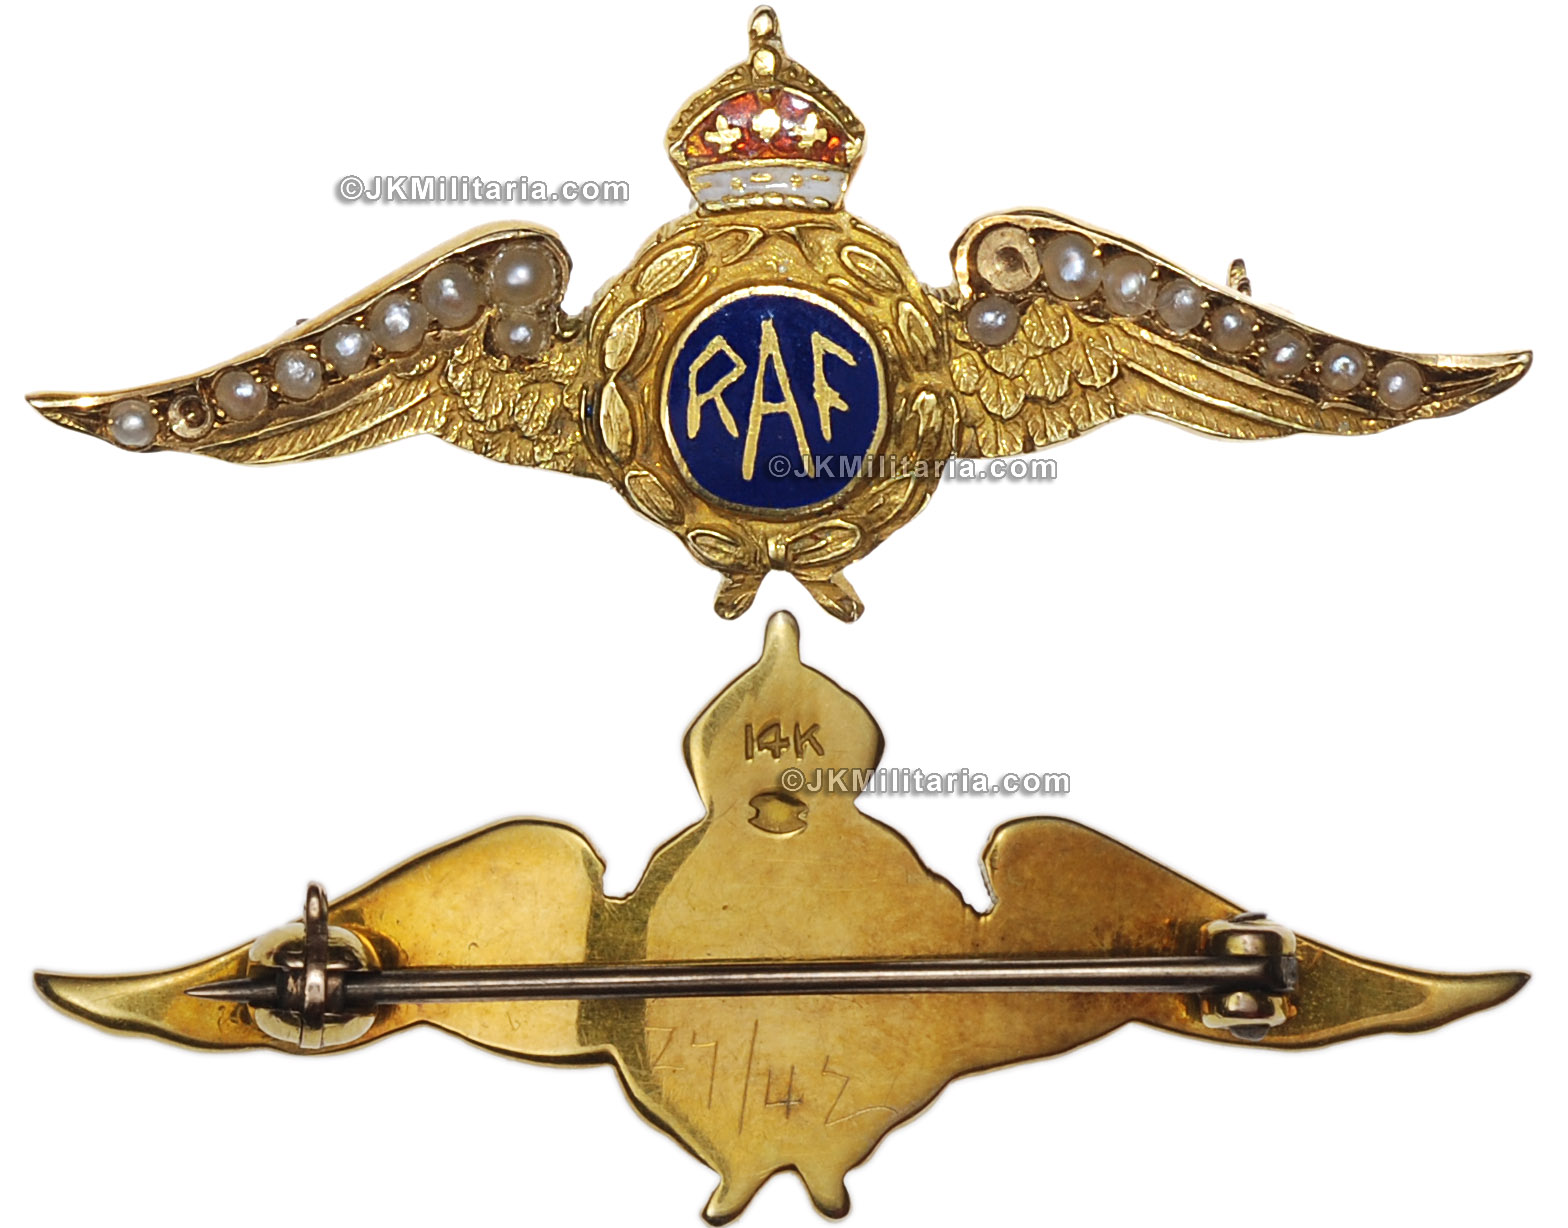 JK Militaria offering sweetheart pins, militaria, orders